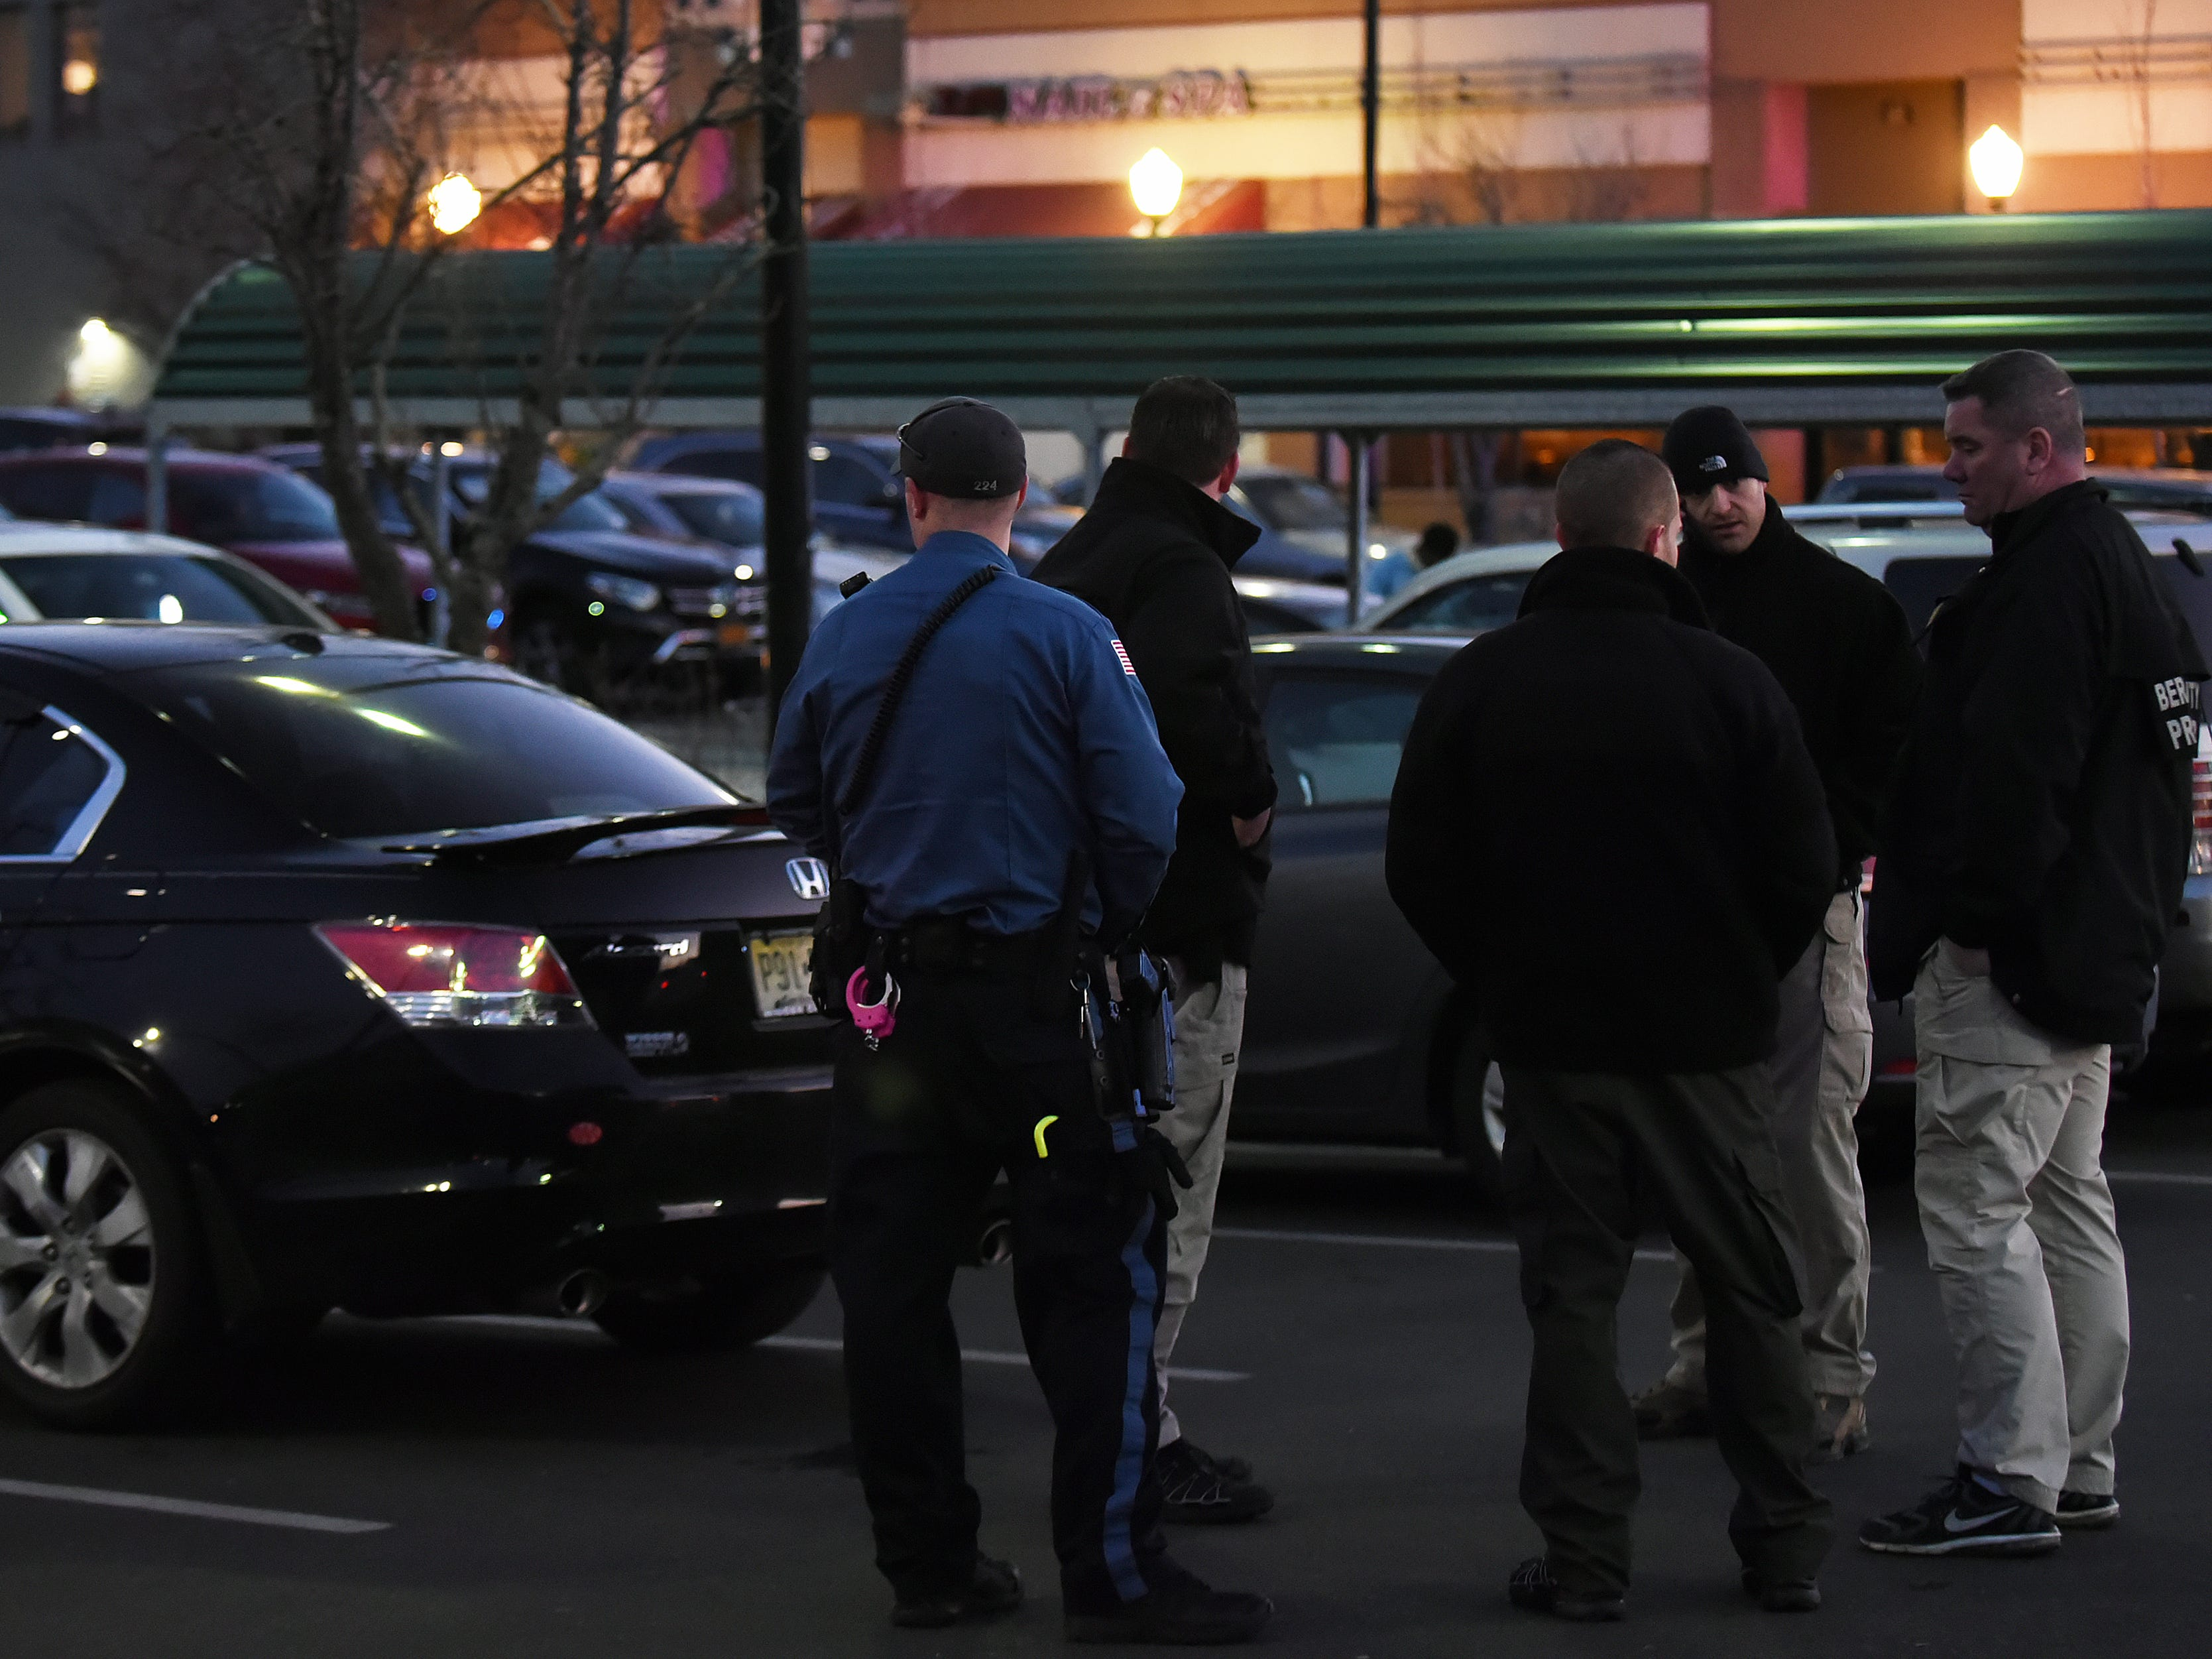 Reports of a double homicide in Englewood on Saturday February 16, 2019. Police at the ShopRite parking lot in Englewood near the victim's car.